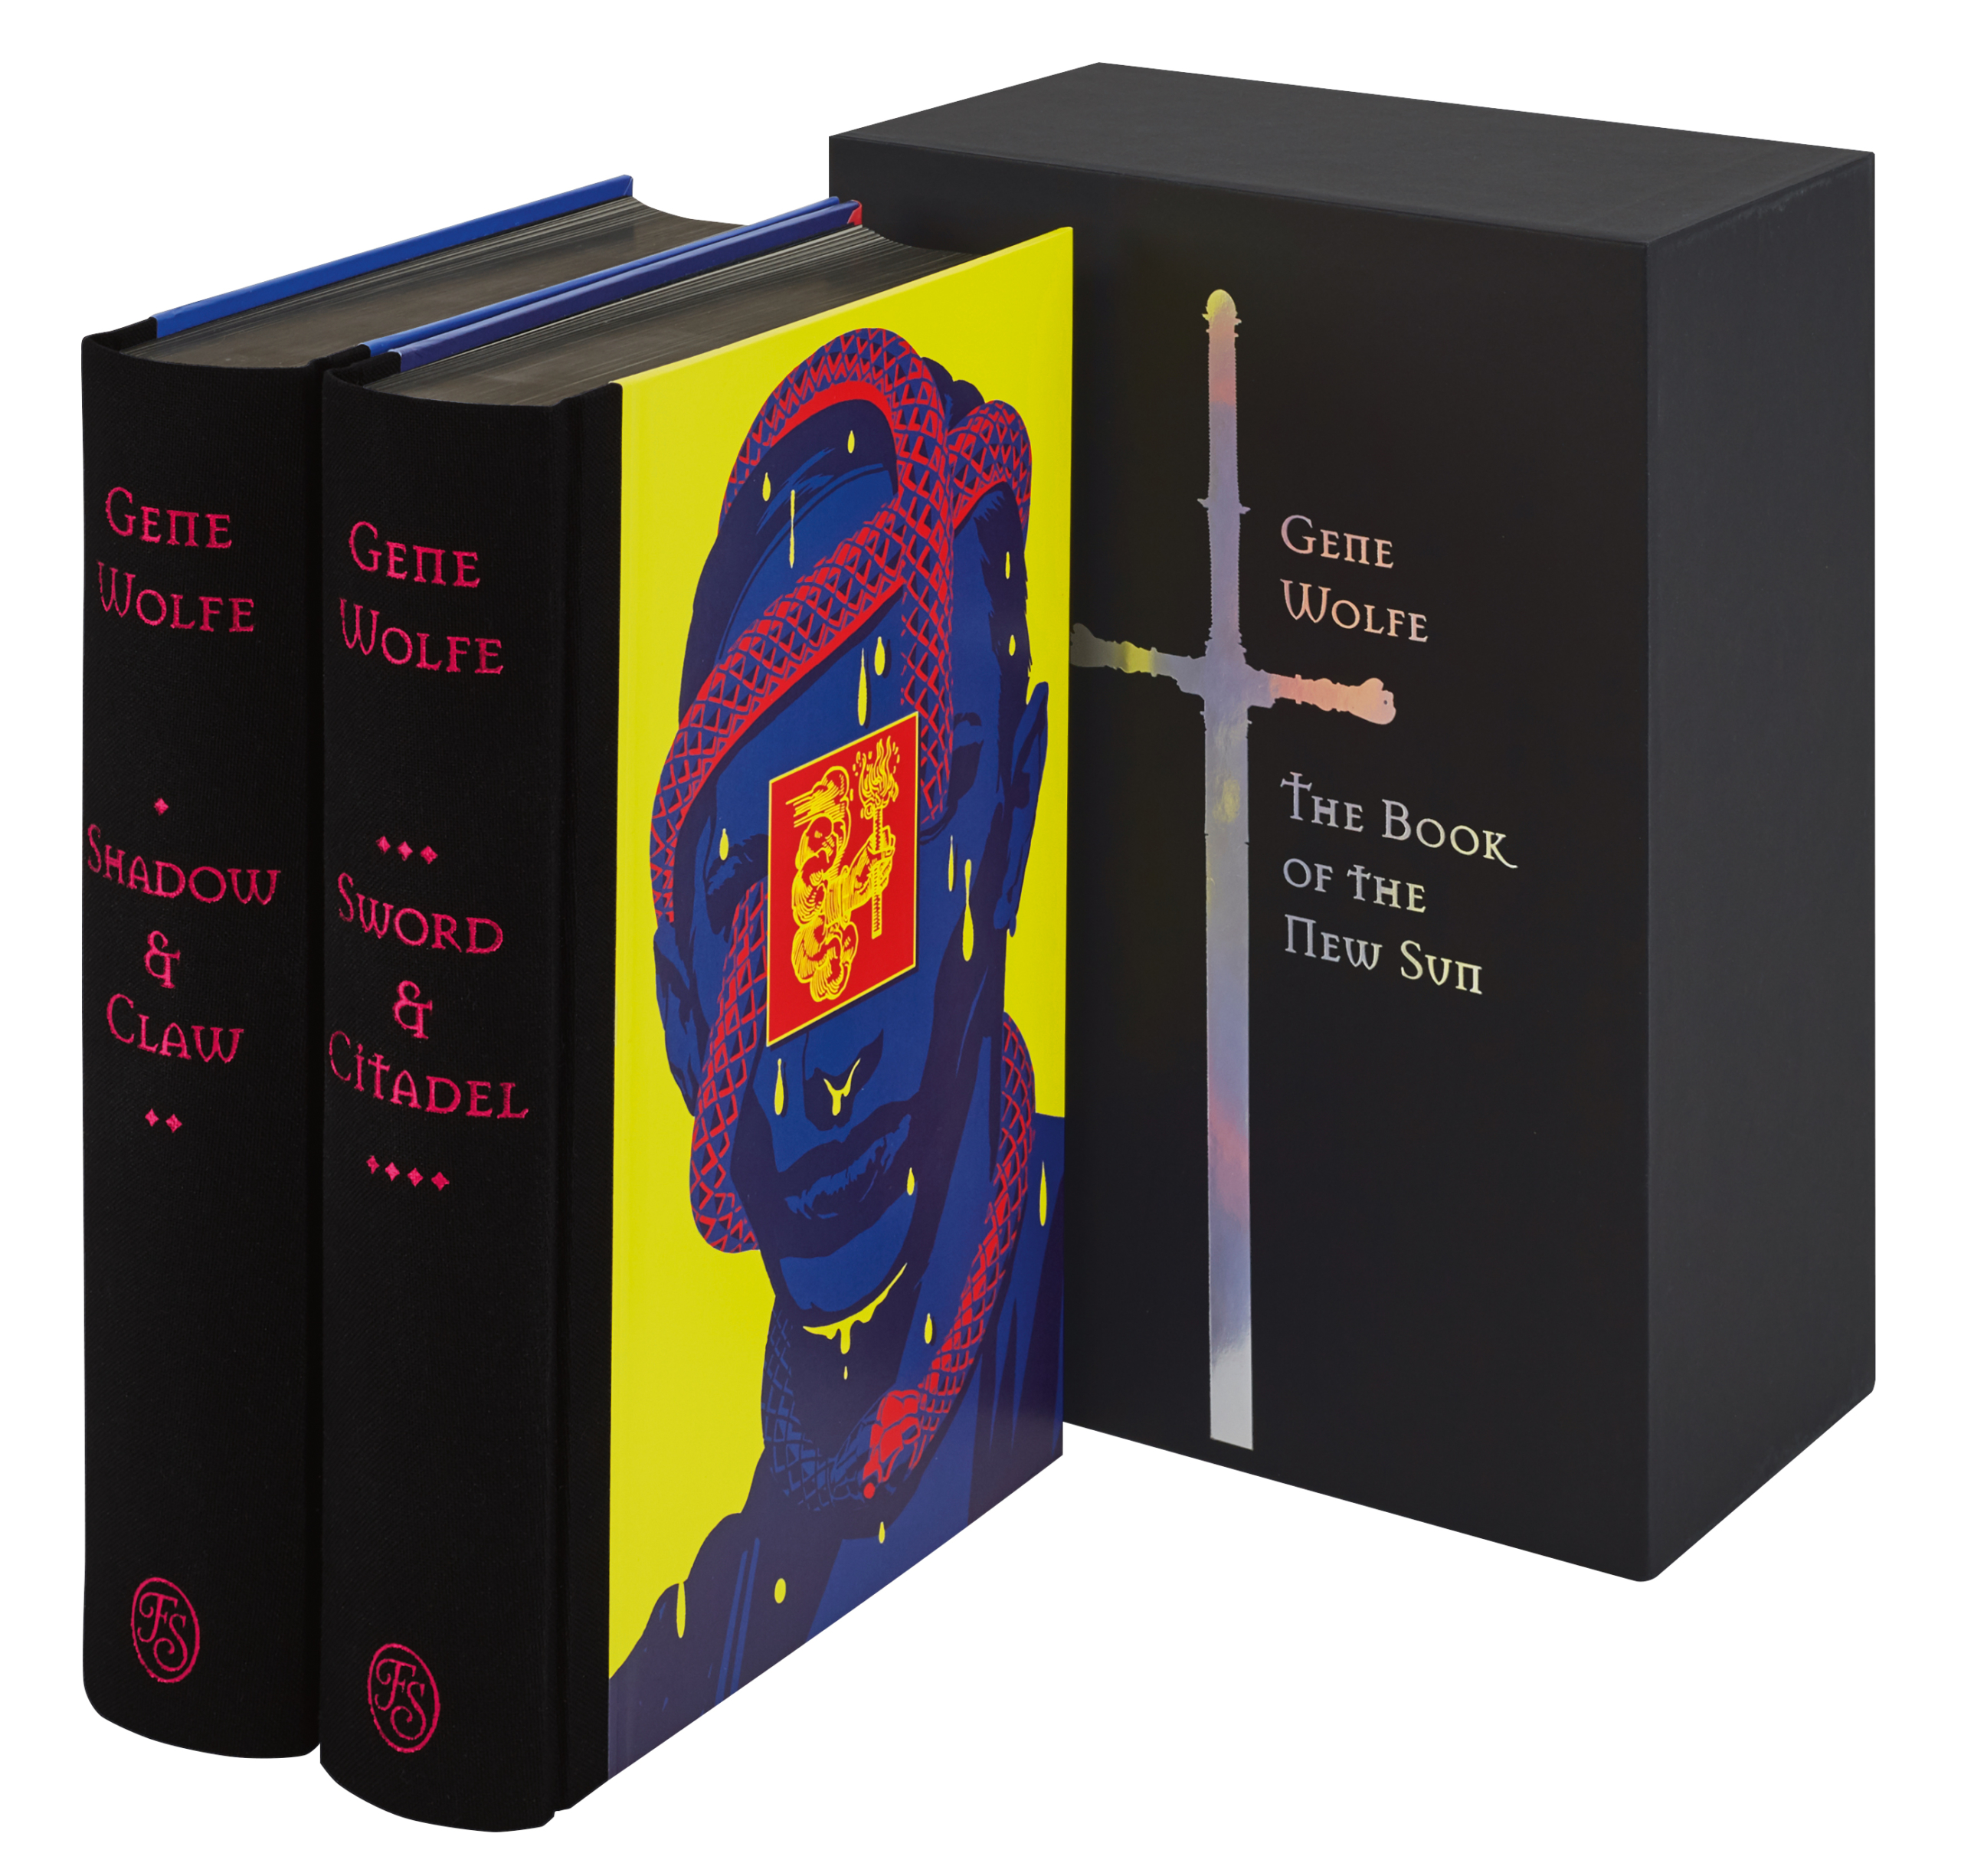 ©2021 Sam Weber from The Folio Society edition of The Book of the New Sun